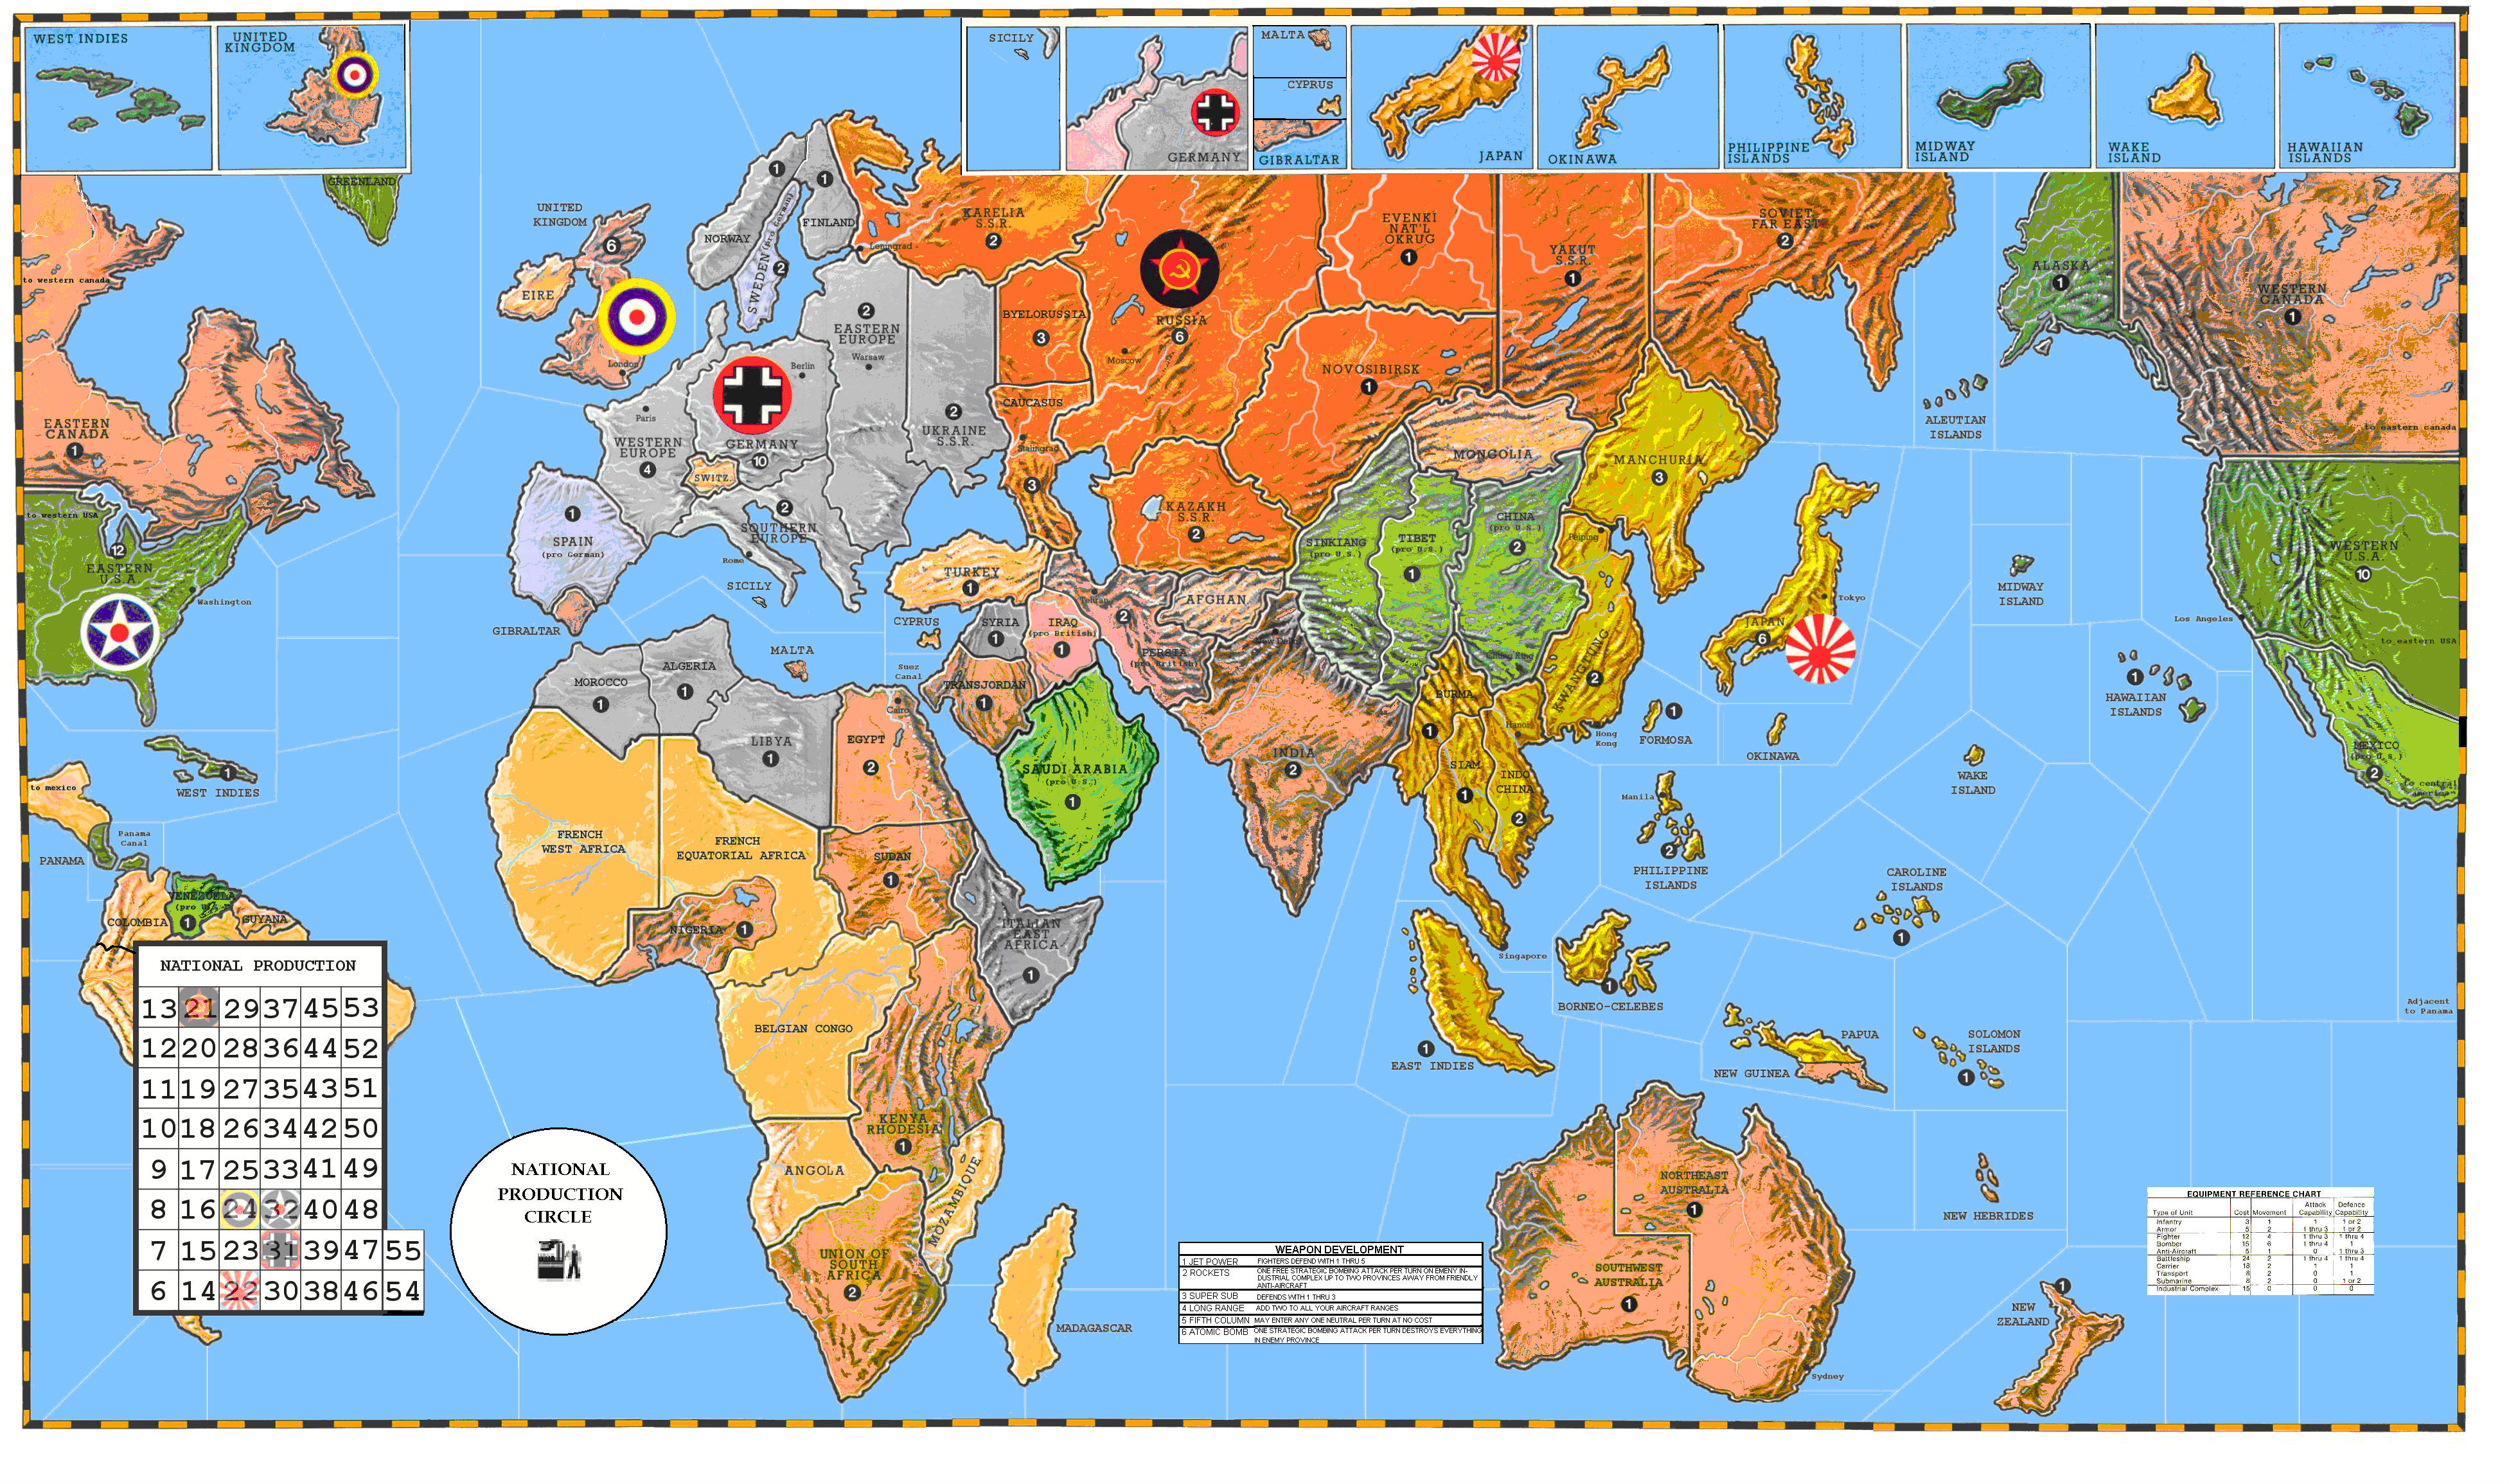 A color map of the world, suitable for playing Axis & Allies, similar to the one above